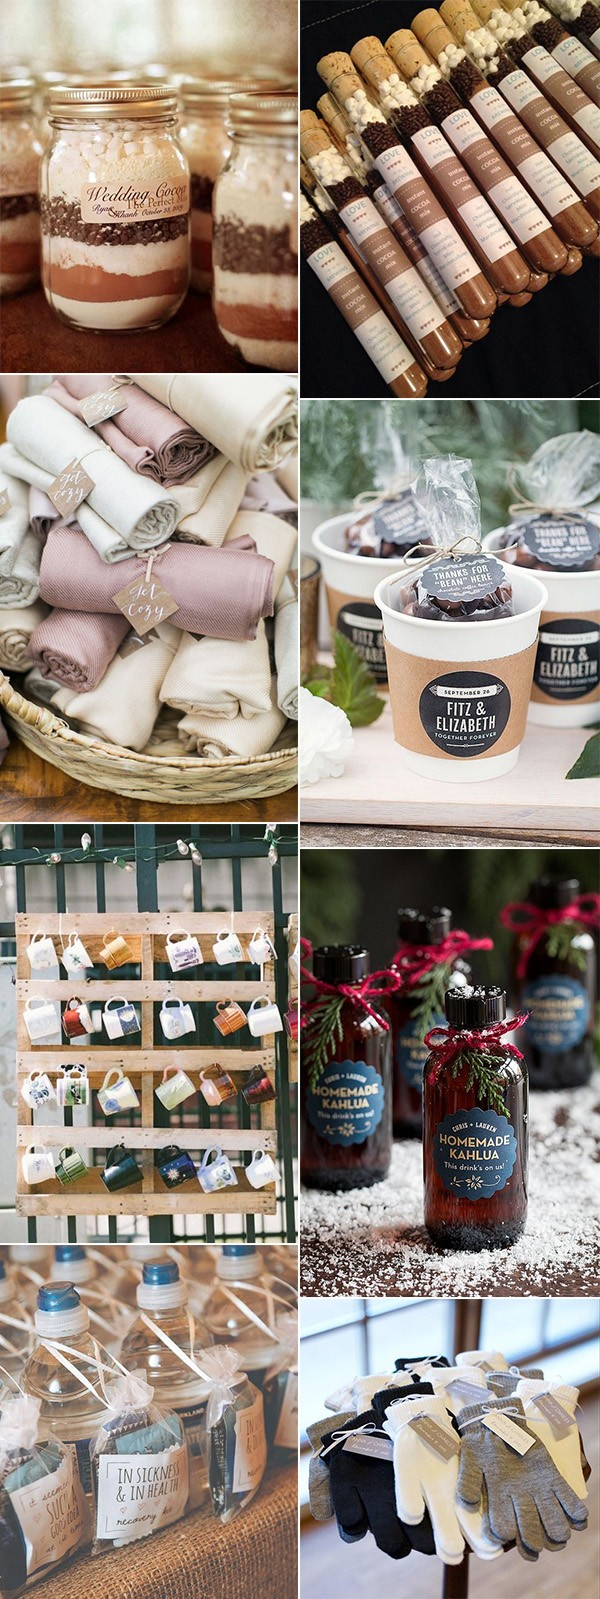 wedding favor ideas for winter